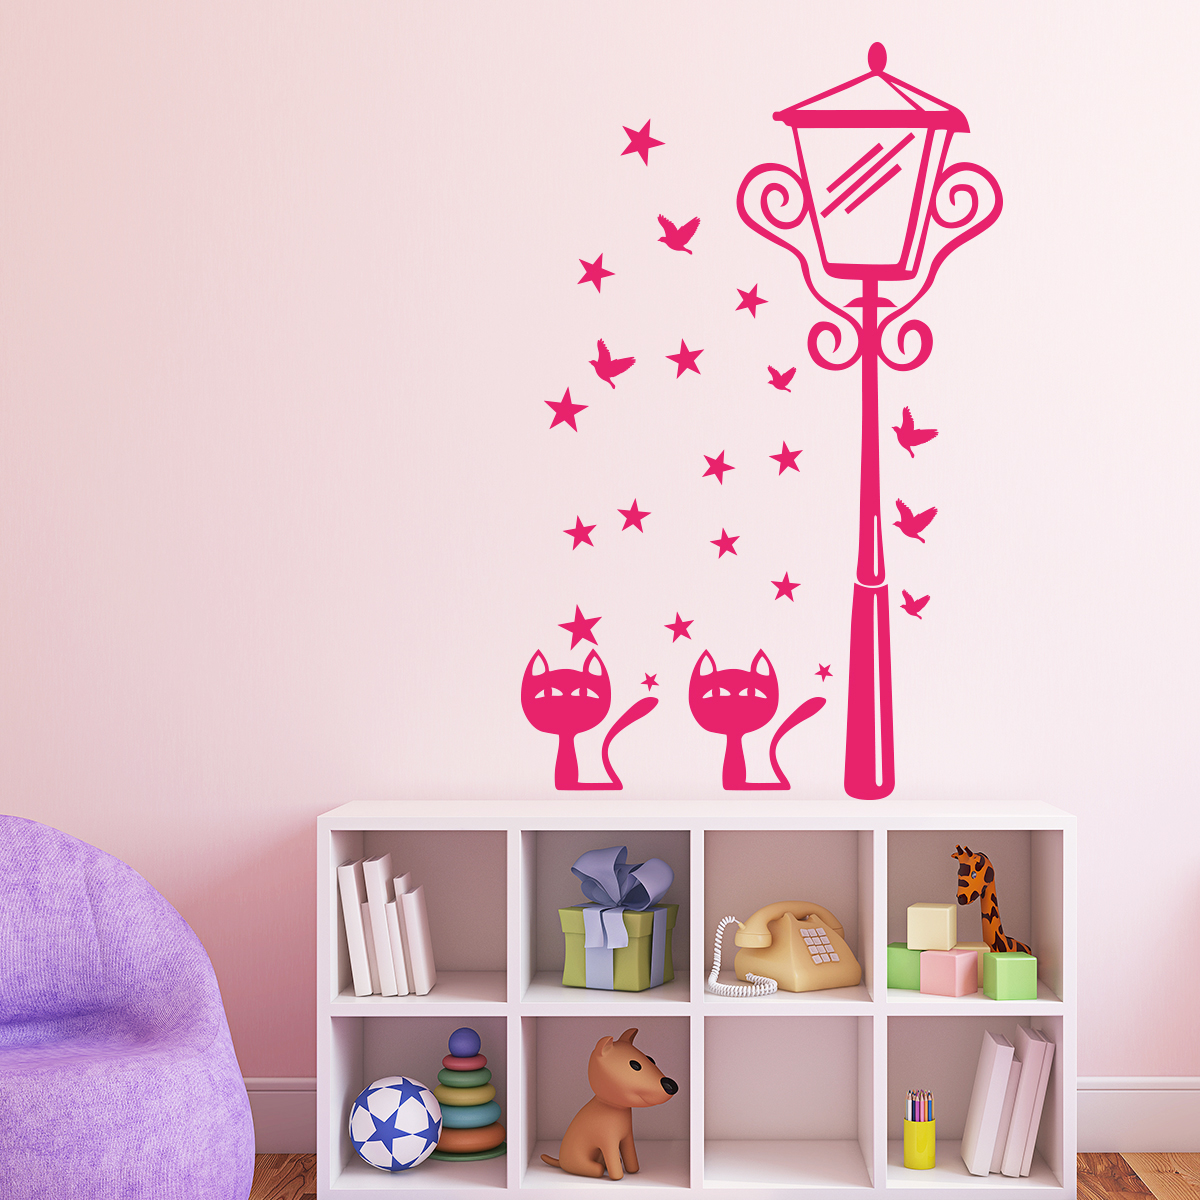 sticker chats toiles papillons et lampadaire stickers chambre enfants chambre b b. Black Bedroom Furniture Sets. Home Design Ideas